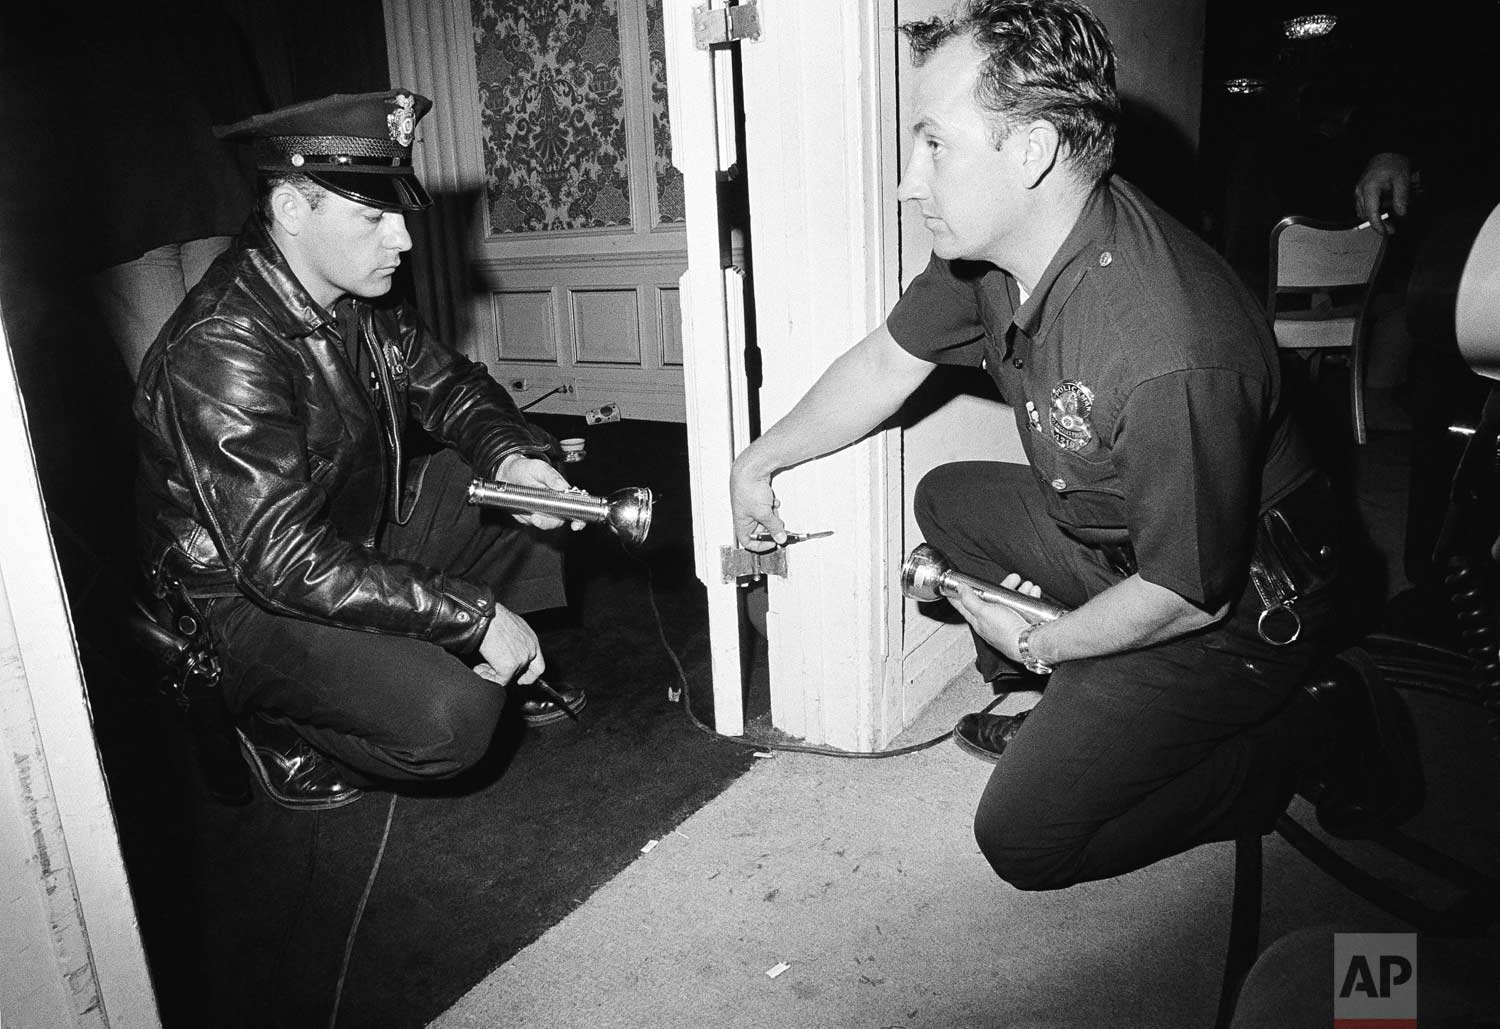 Robert Rozzi, police technician, and Charles Wright, police officer, left, inspect a bullet hole discovered in a door frame in a kitchen corridor of the Ambassador hotel in Los Angeles near where Sen. Robert F. Kennedy was shot and critically wounded June 5, 1968. Bullet is still in the wood. (AP Photo/Dick Strobel)